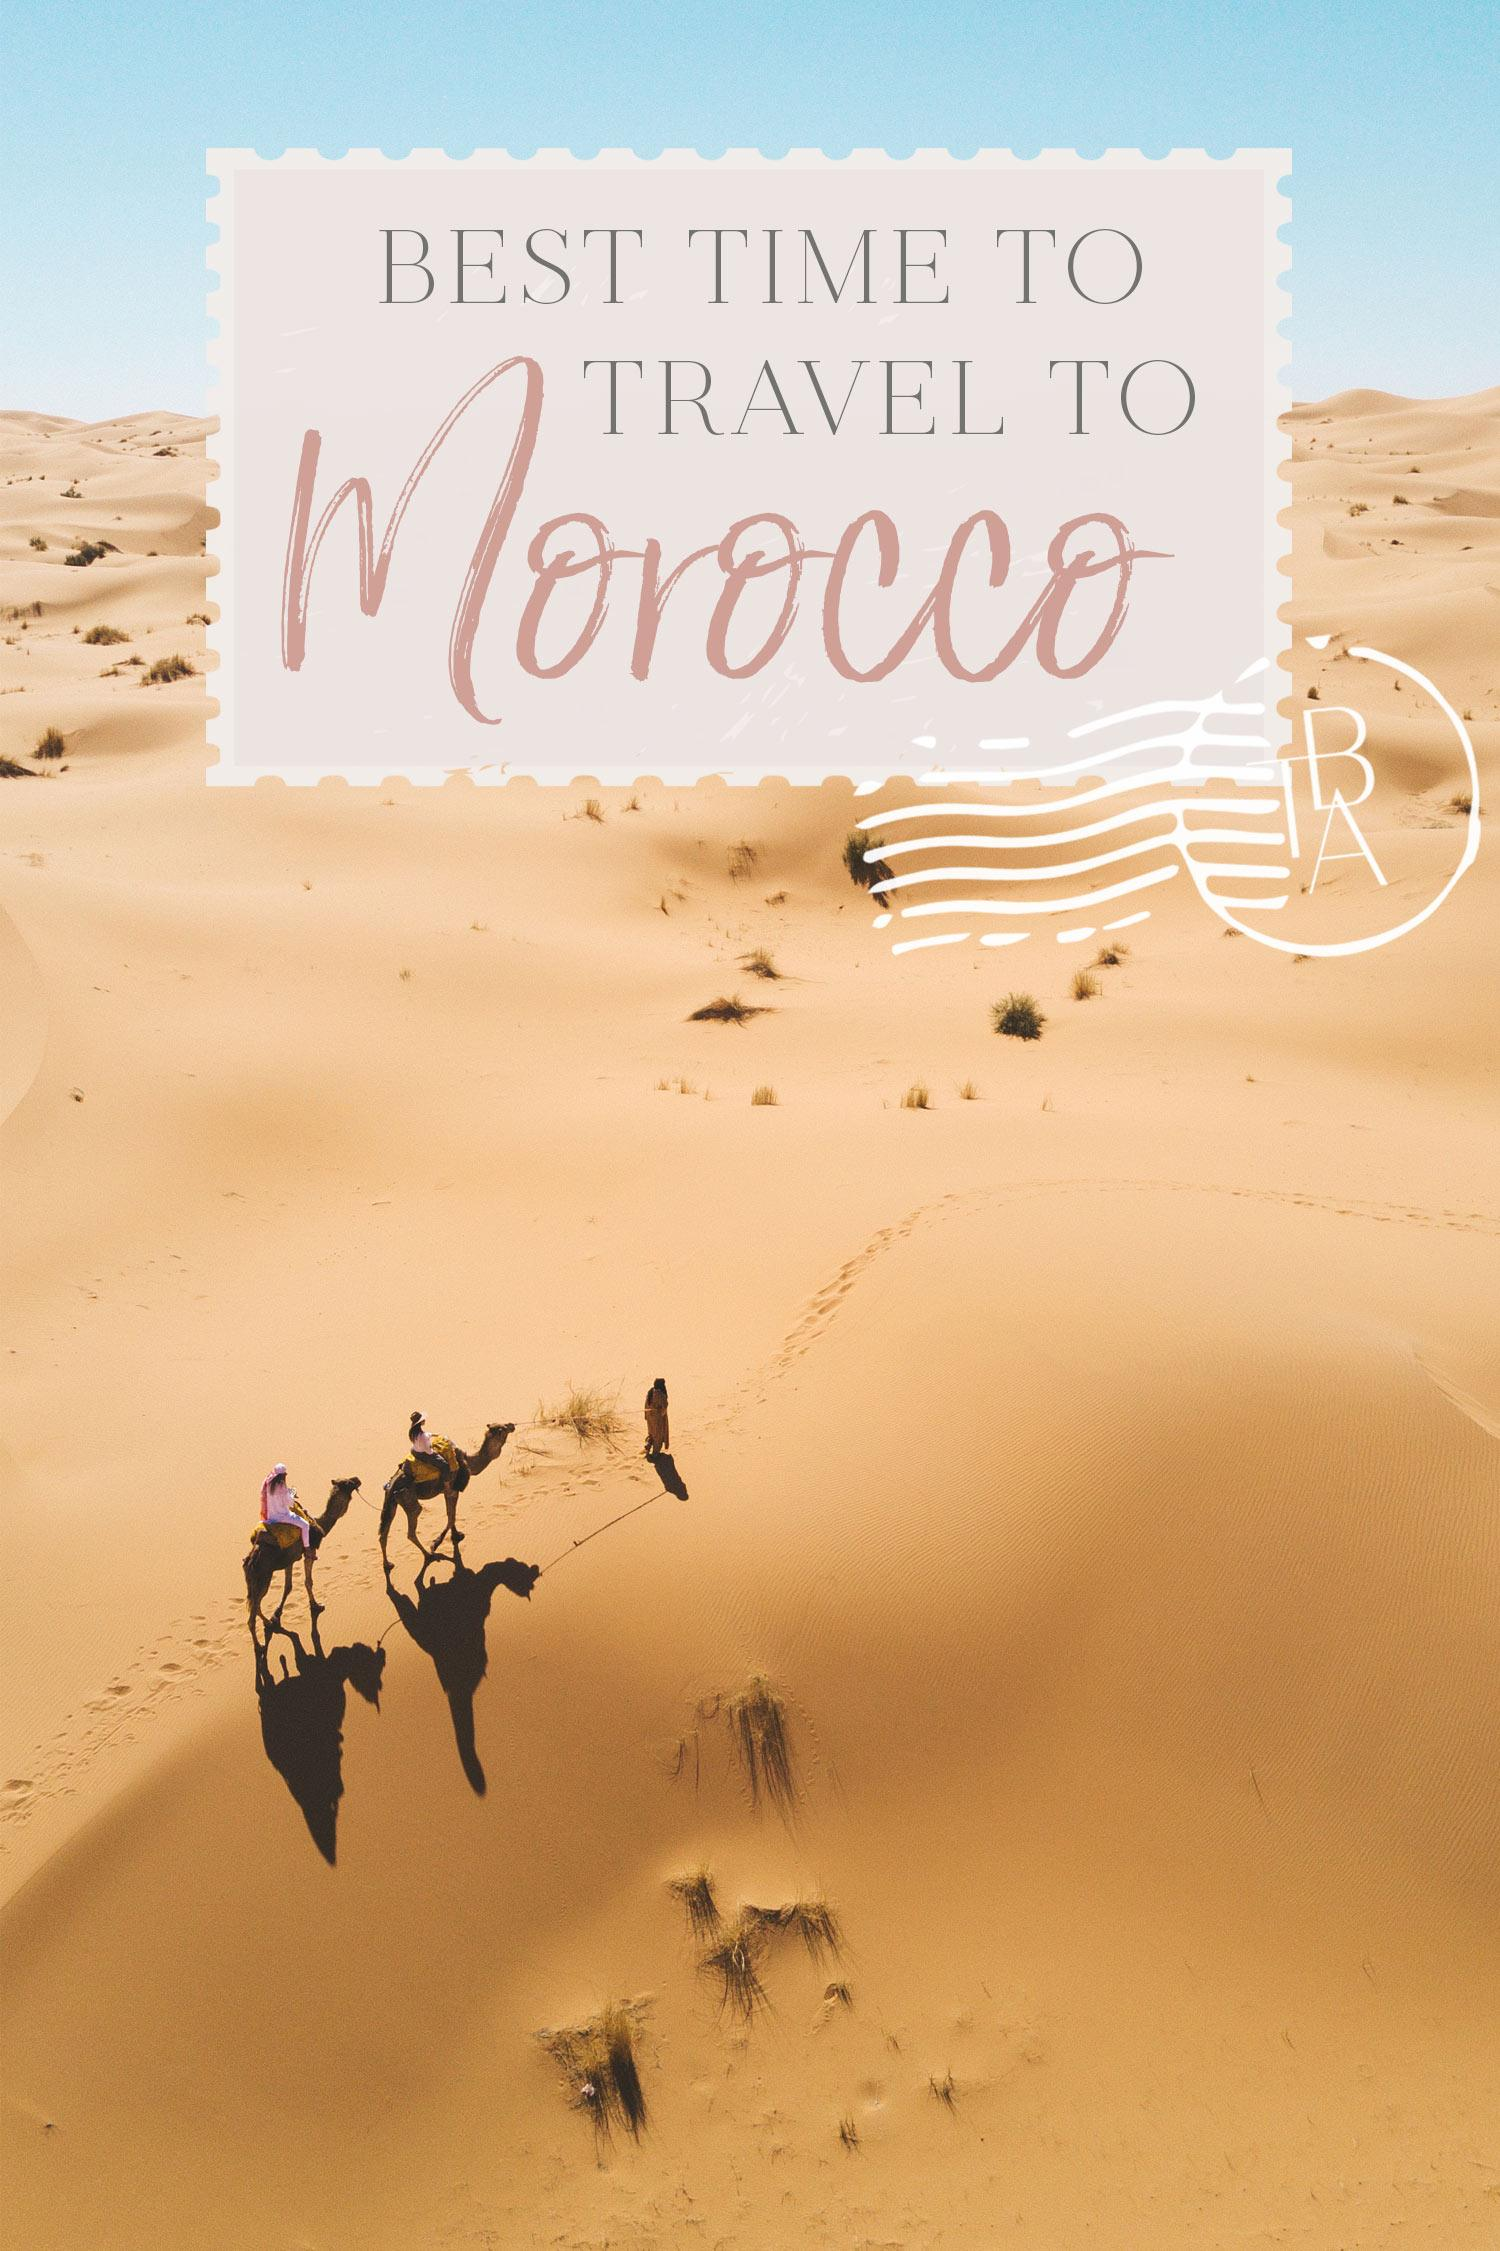 The best time to travel in morocco